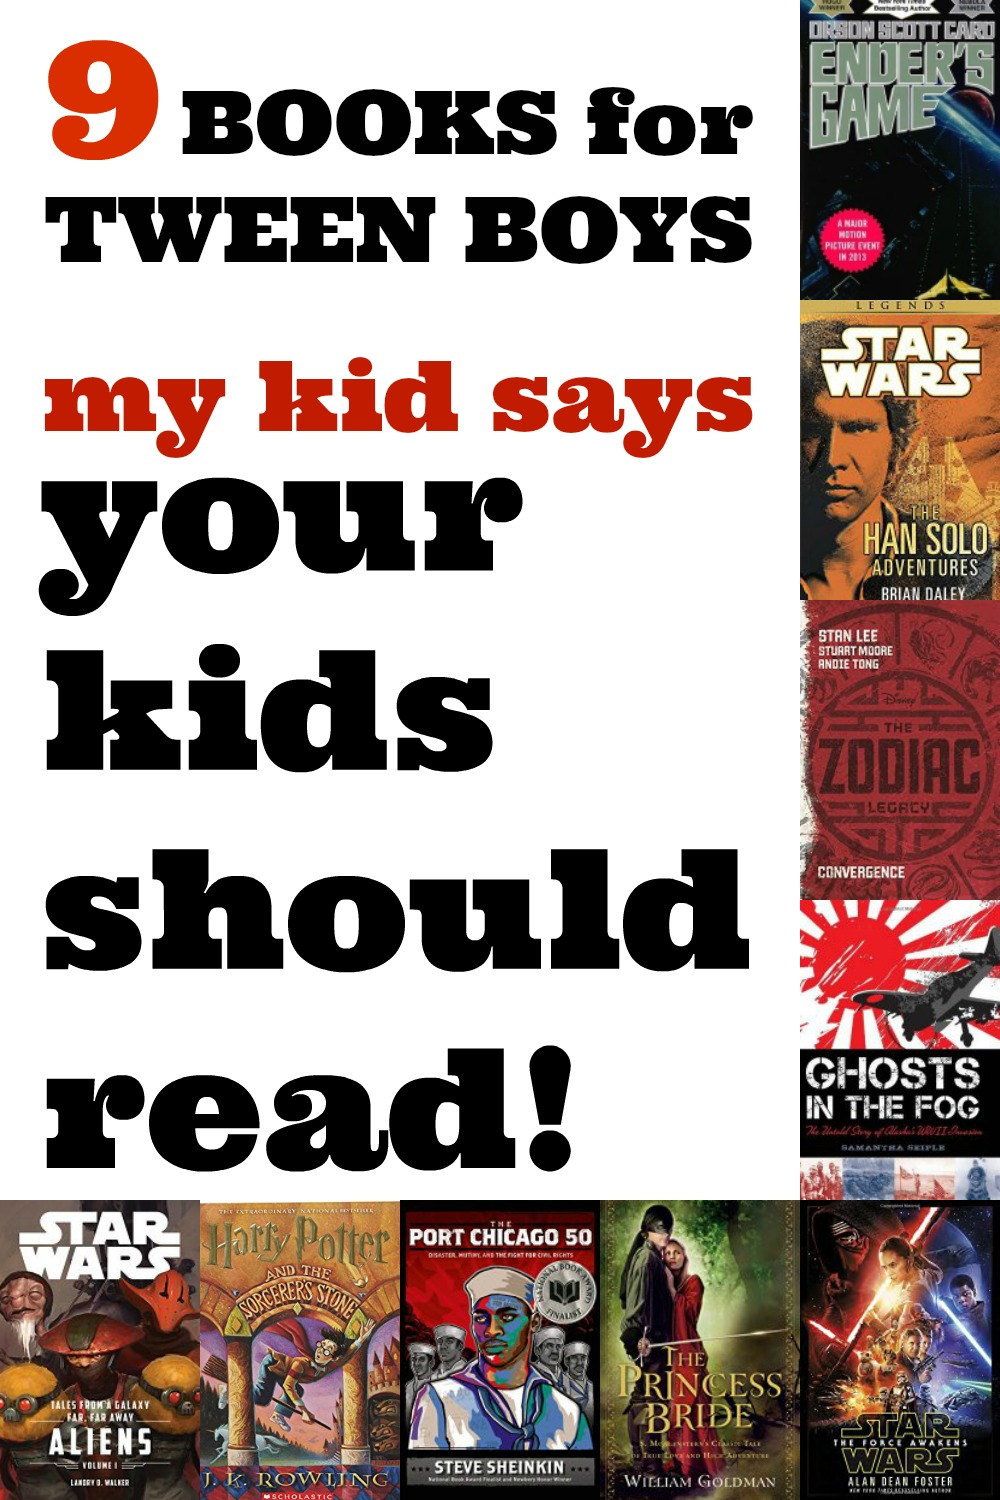 9 books for tween boys my kid says your kids should read! A book list for kids, by a kid! Ender's Game, Han Solo Adventures, and more great books for tweens!